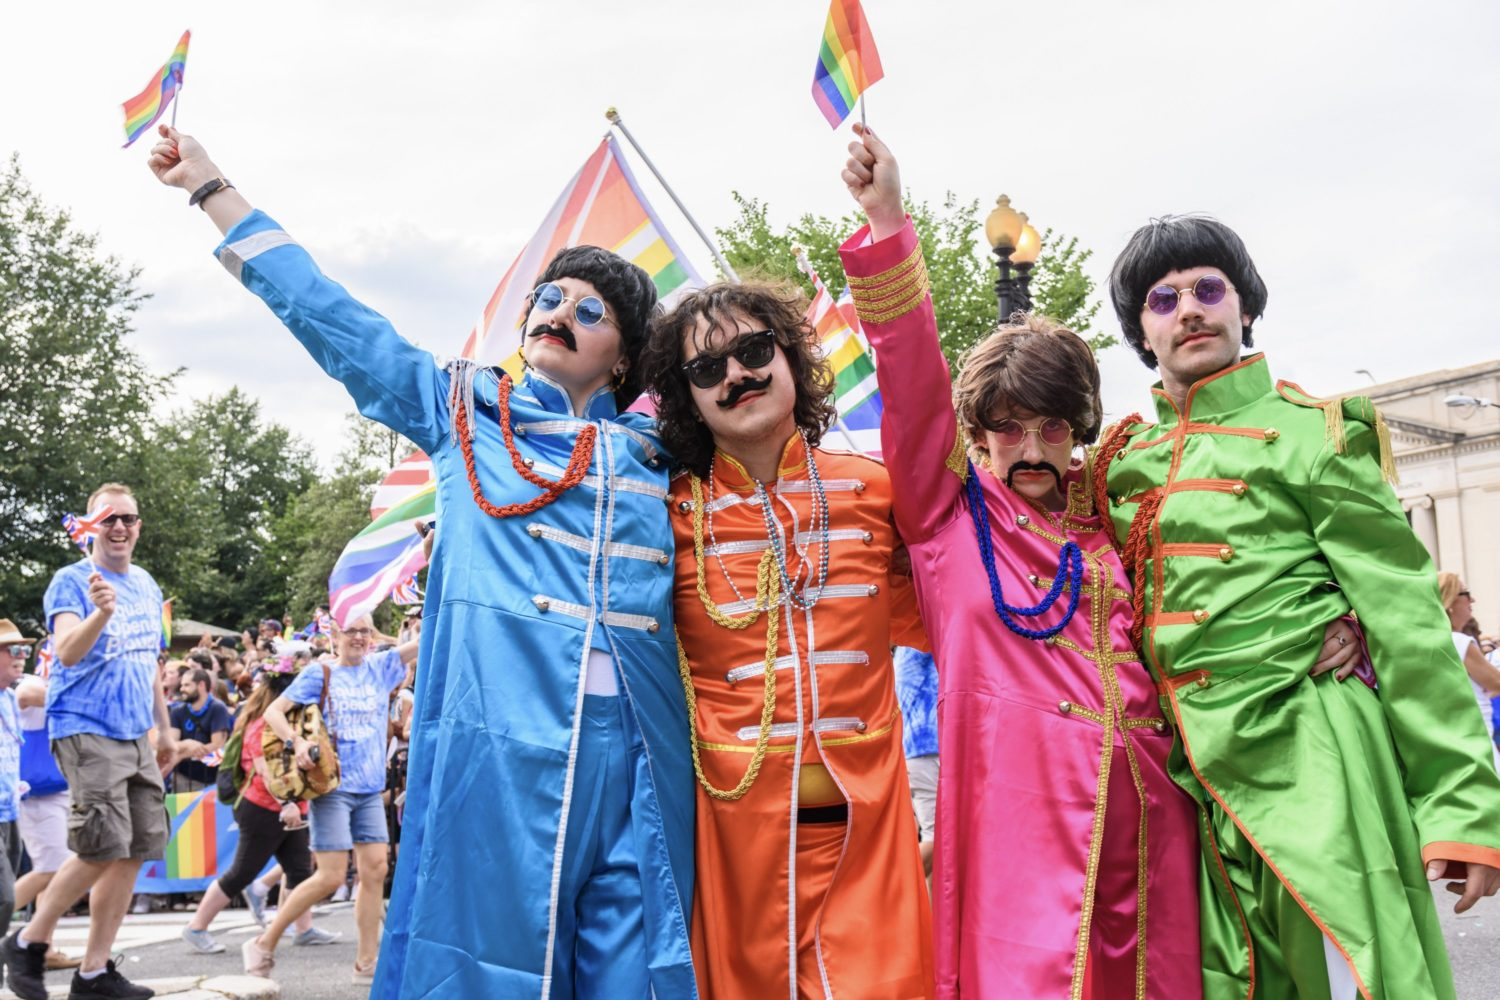 Embassy volunteers dressed as the Beatles wave rainbow flags during the Capital Pride Parade. Photo by Scott Marder.